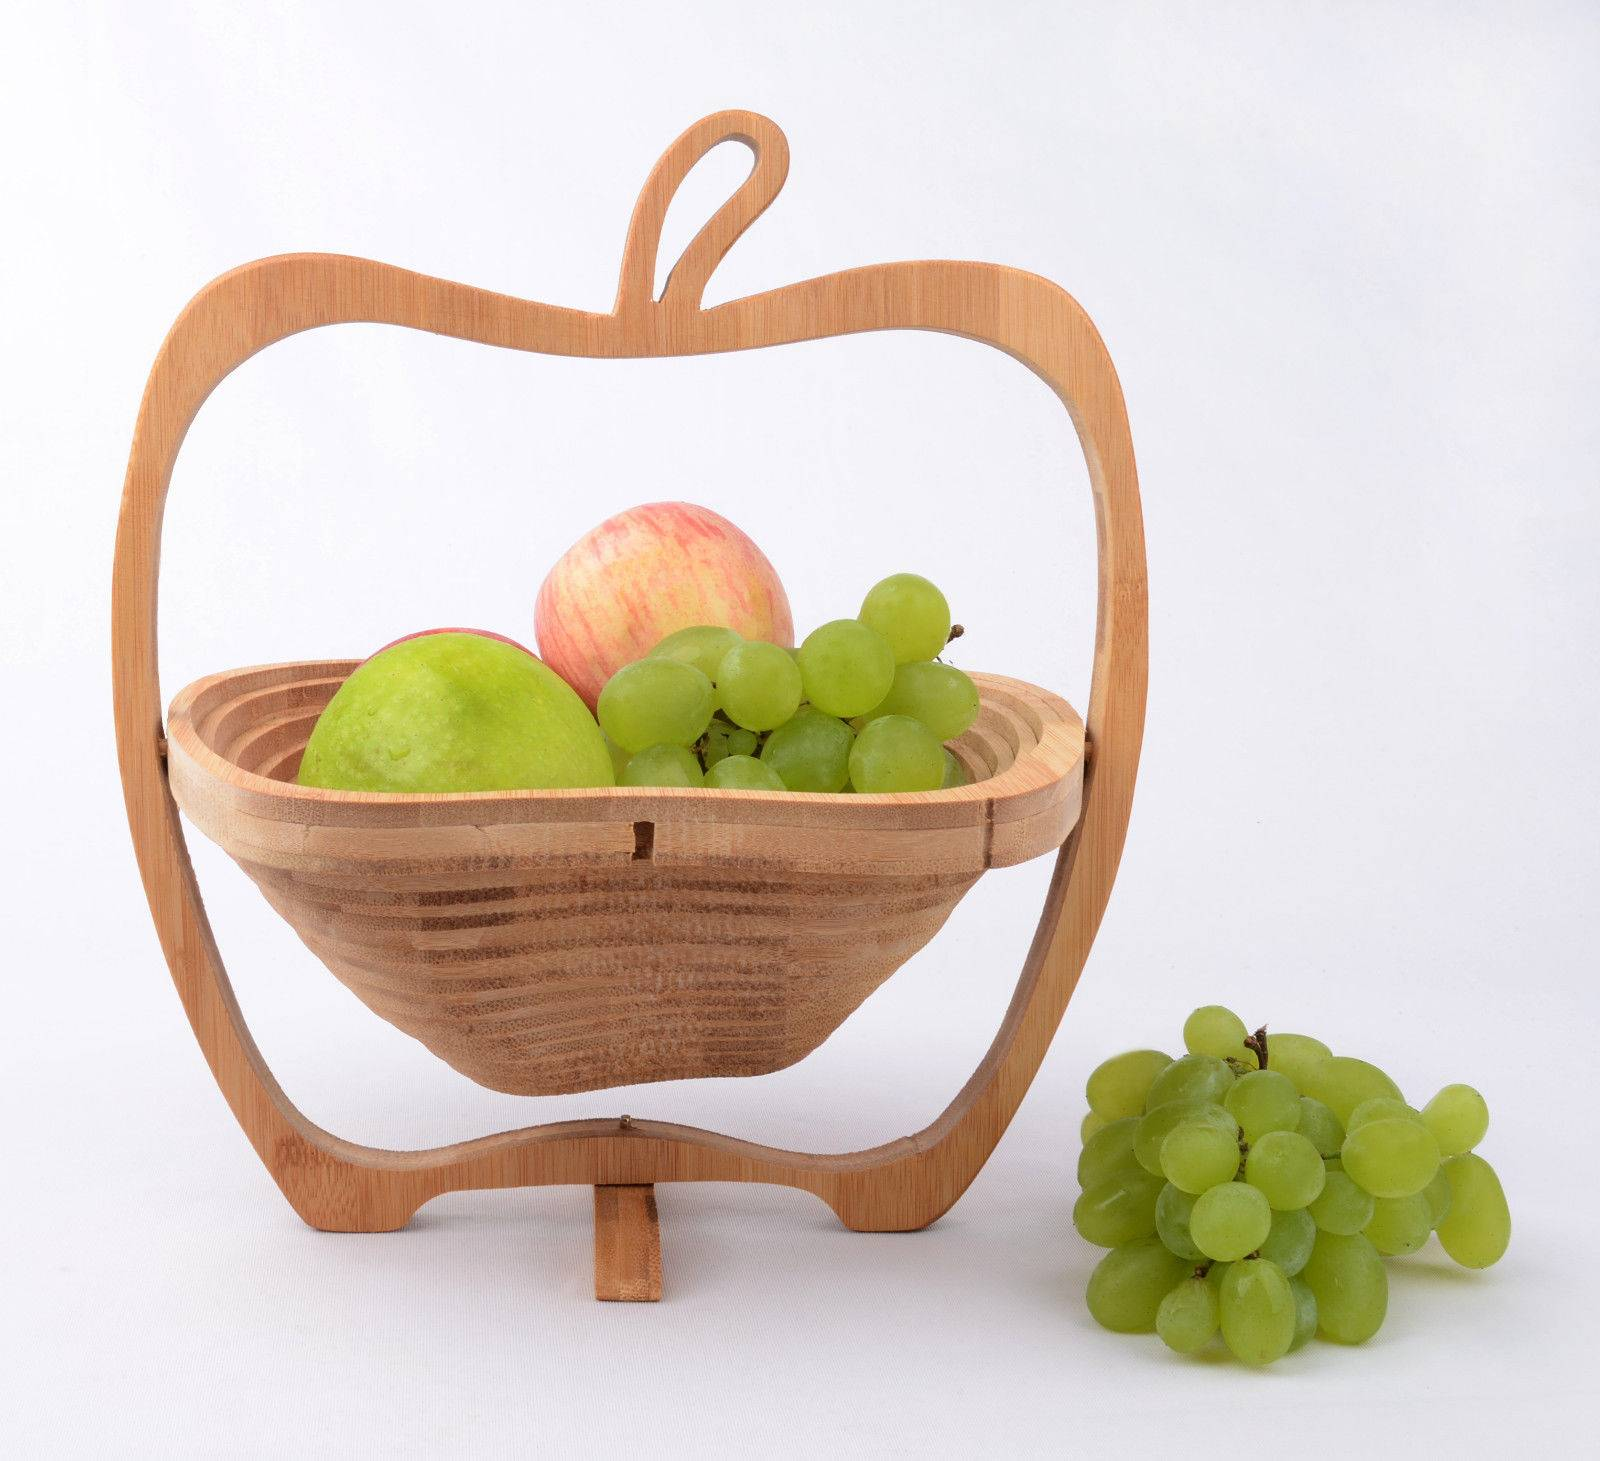 Apple Shaped Bamboo Wooden Foldable Collapsible Fruit and Egg Bread Basket